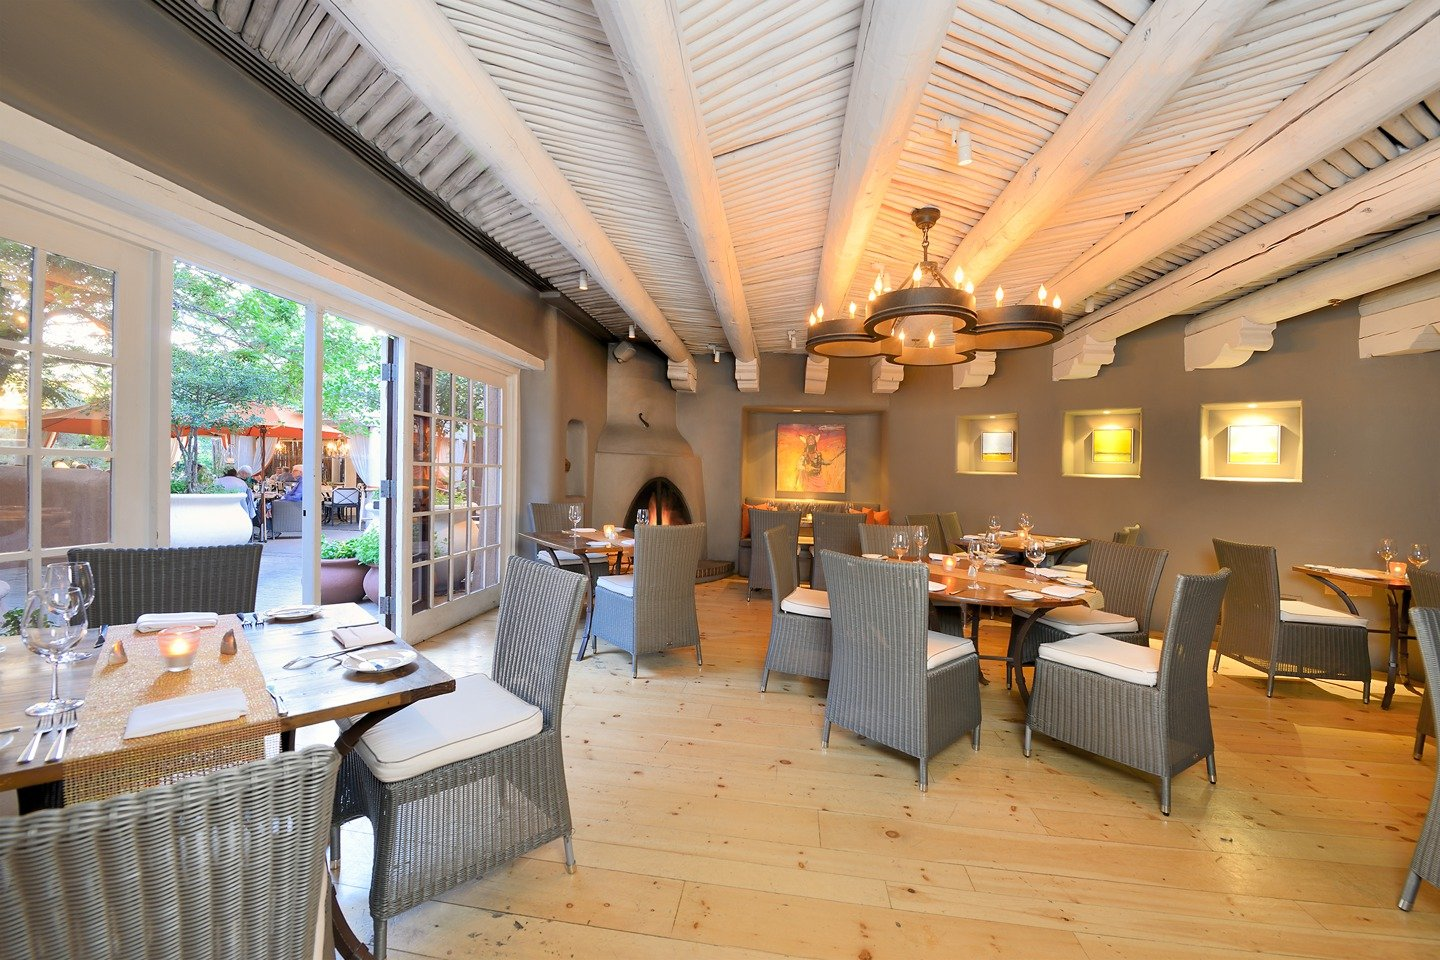 Santa fe hotels share restaurant hirings renovations